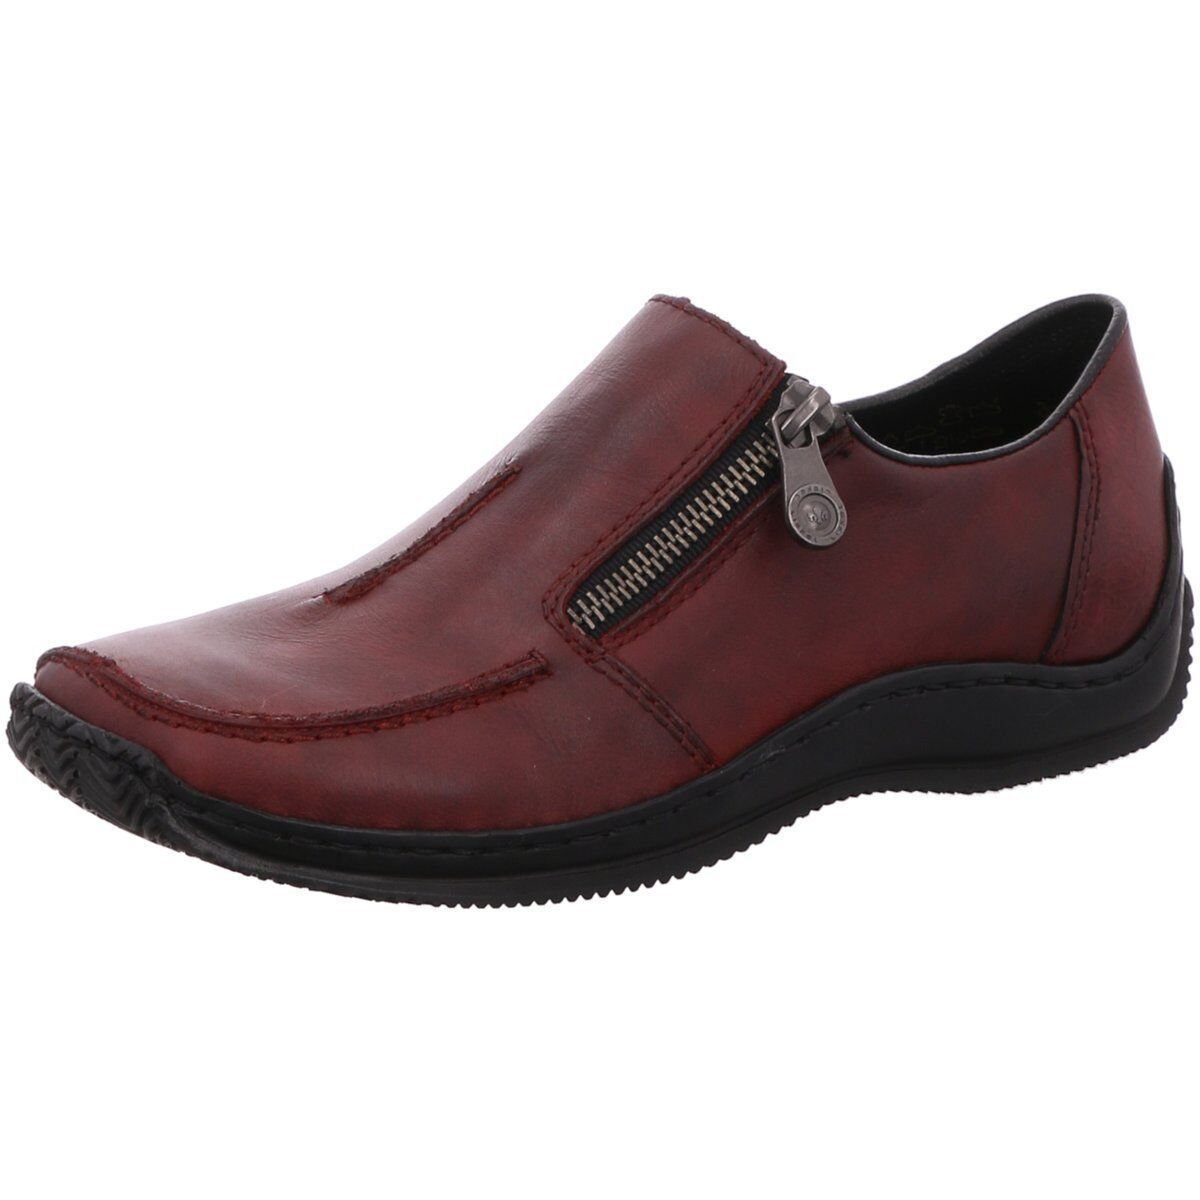 Rieker Damen Slipper Slipper in Bordo L1780-35 rot 574632